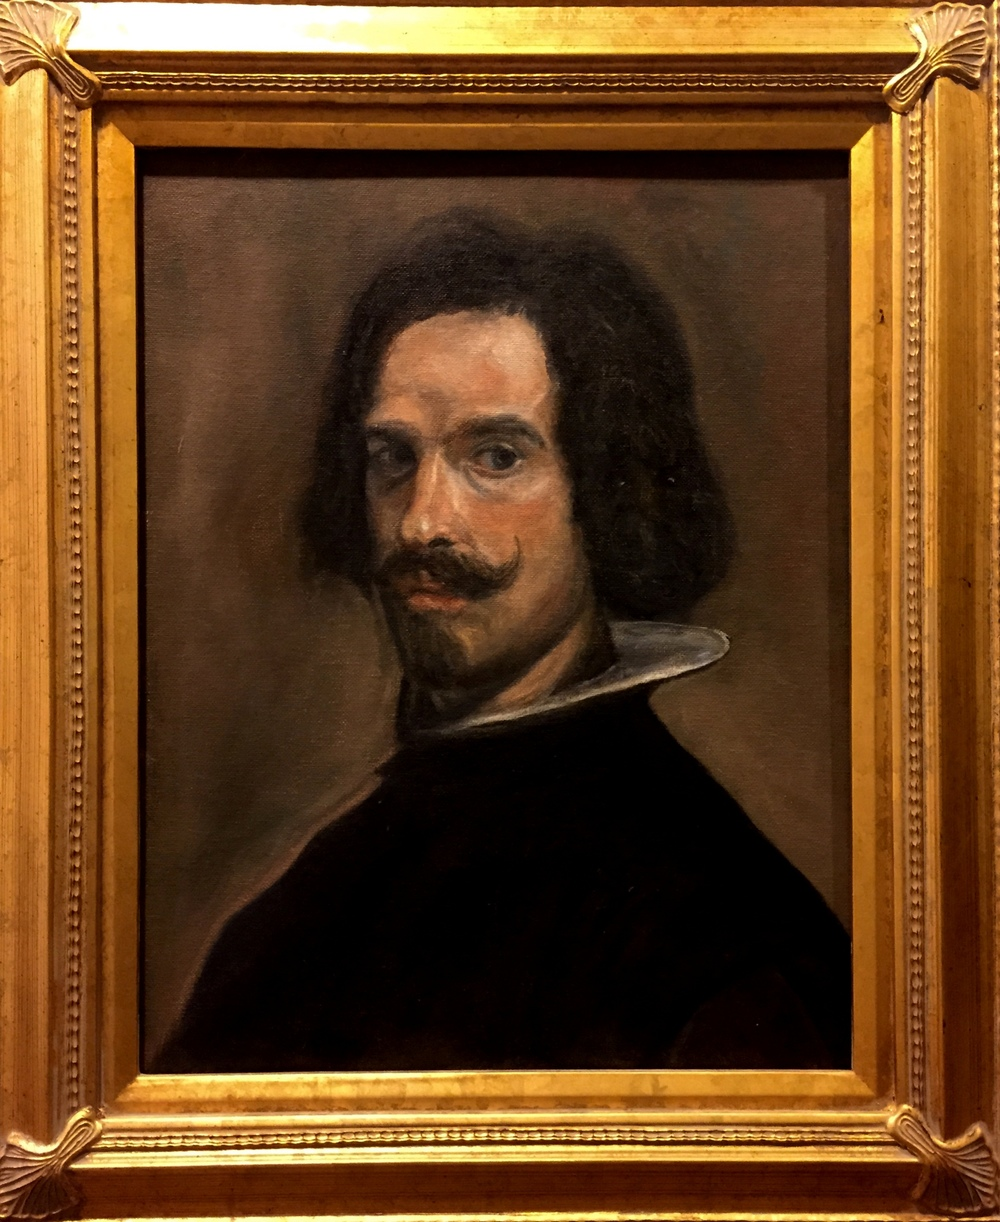 Oil study of Velasquez' Portrait of a Man